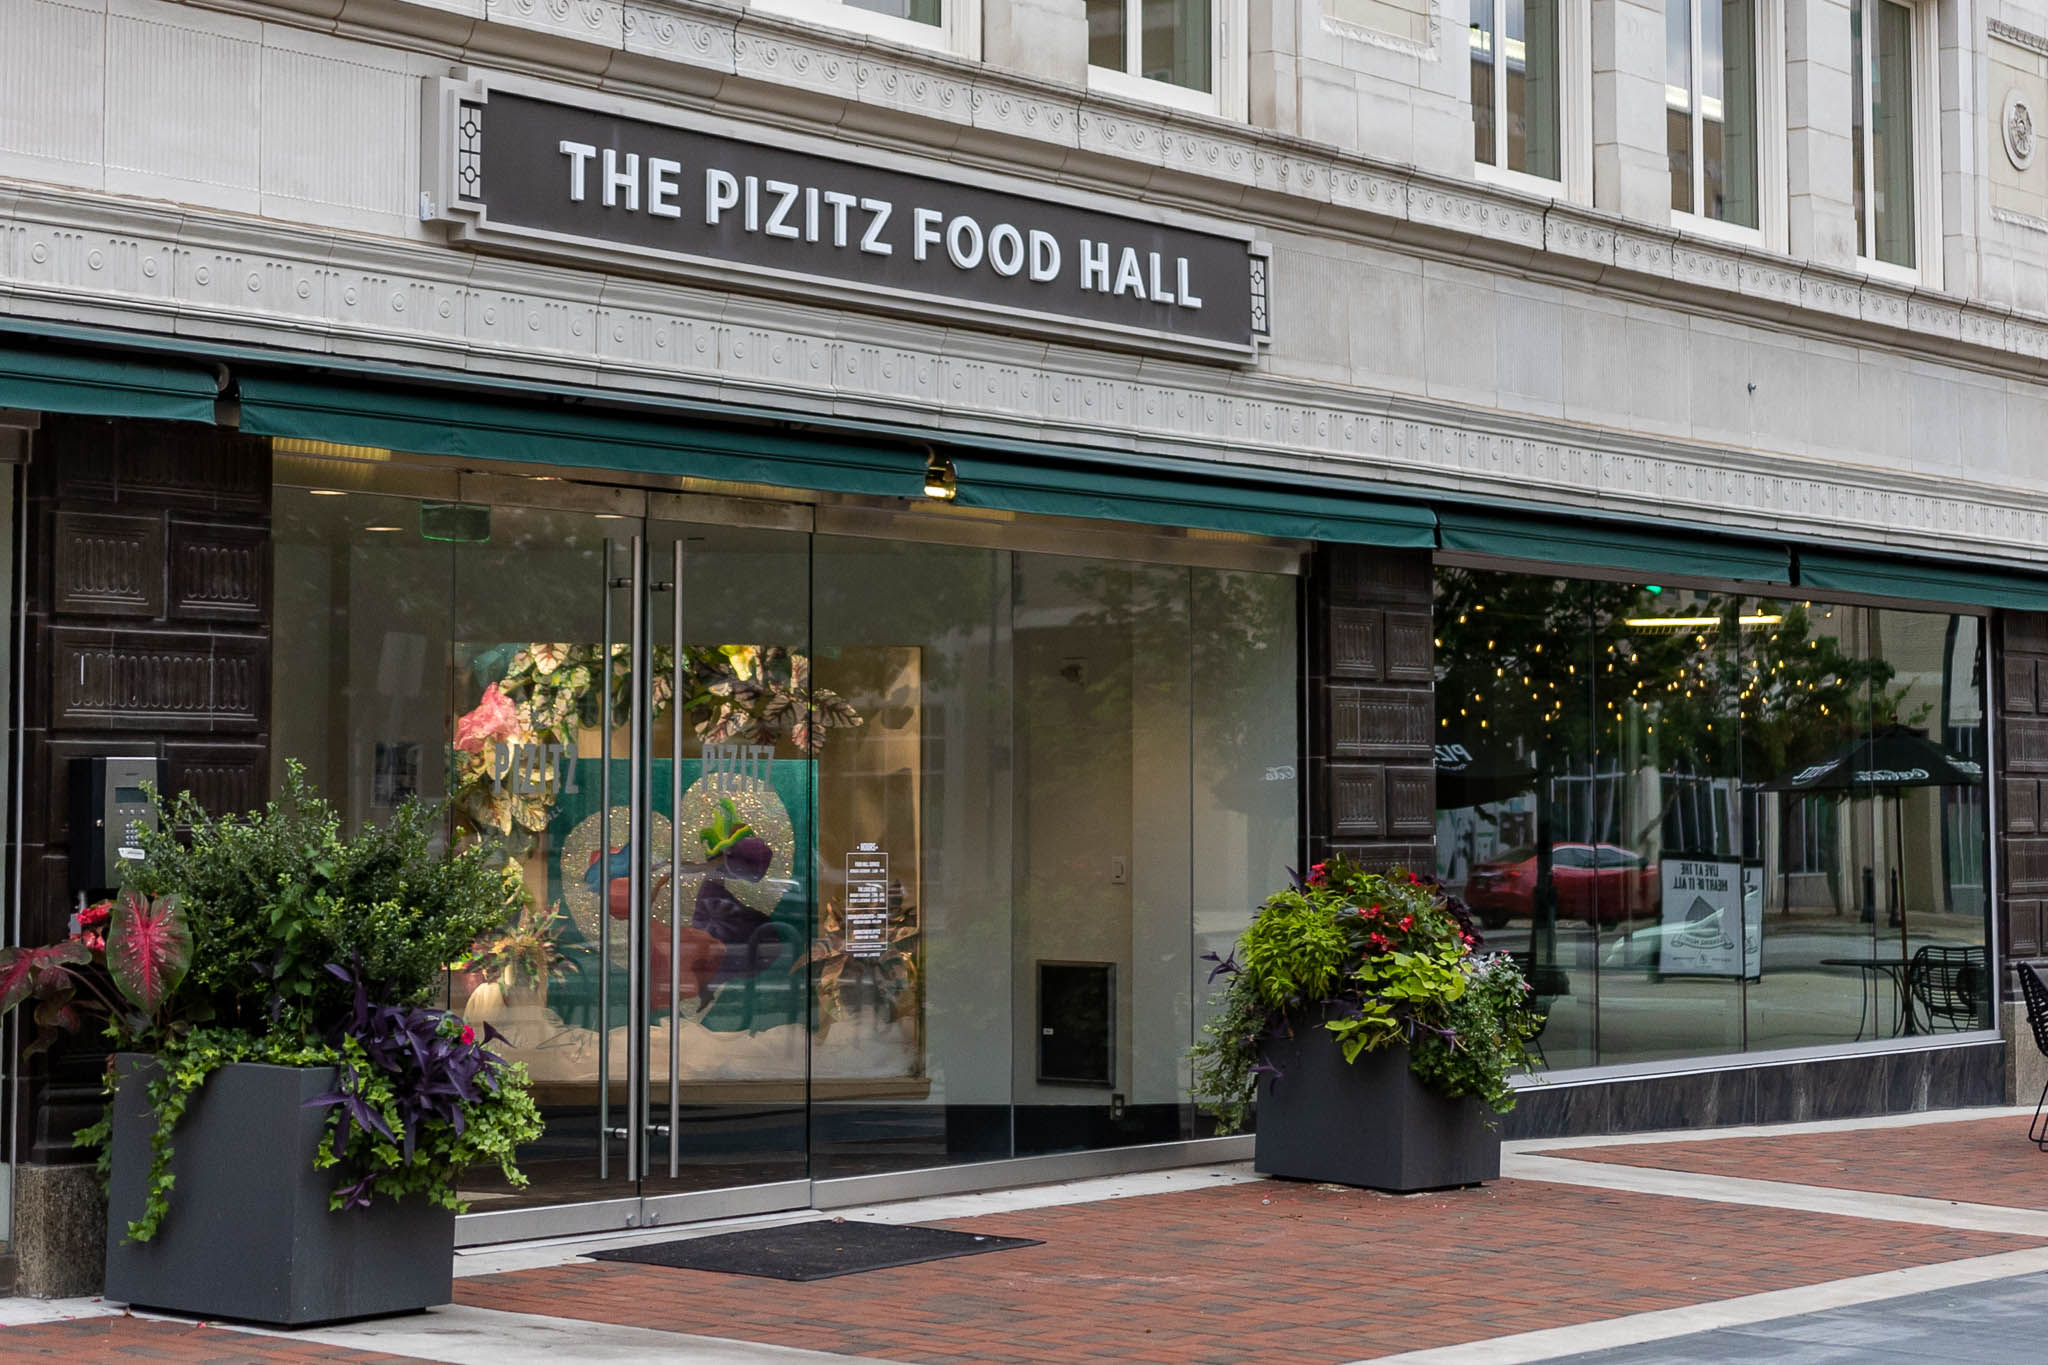 5 things we love at The Pizitz Food Hall, from crispy chicken wings to happy hour and free yoga